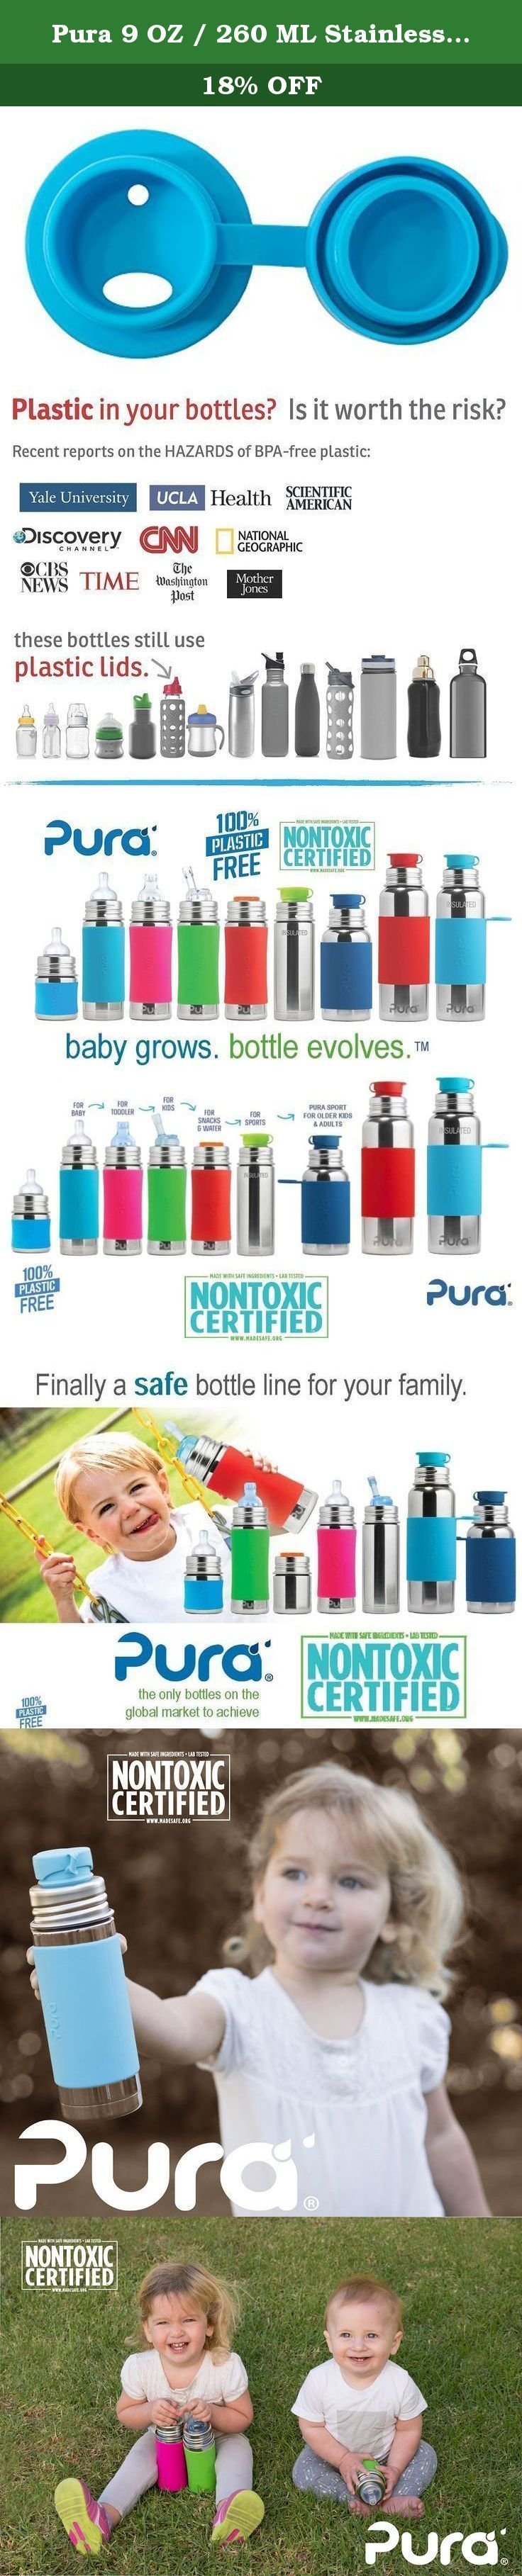 Pura 9 OZ / 260 ML Stainless Steel Insulated Kids Sport Bottle with Silicone Sport Flip Cap & Sleeve, Aqua (Plastic Free, Nontoxic Certified, BPA Free). Our development team took up the challenge of creating the first (and only) 100% plastic-free sport bottles in the world. Like all bottles in the Pura Sport collection, the Pura INSULATED Jr Sport Bottle features a double-wall vacuum insulated Food Grade Stainless Steel bottle (18/8), Medical Grade Silicone components, and zero plastic...